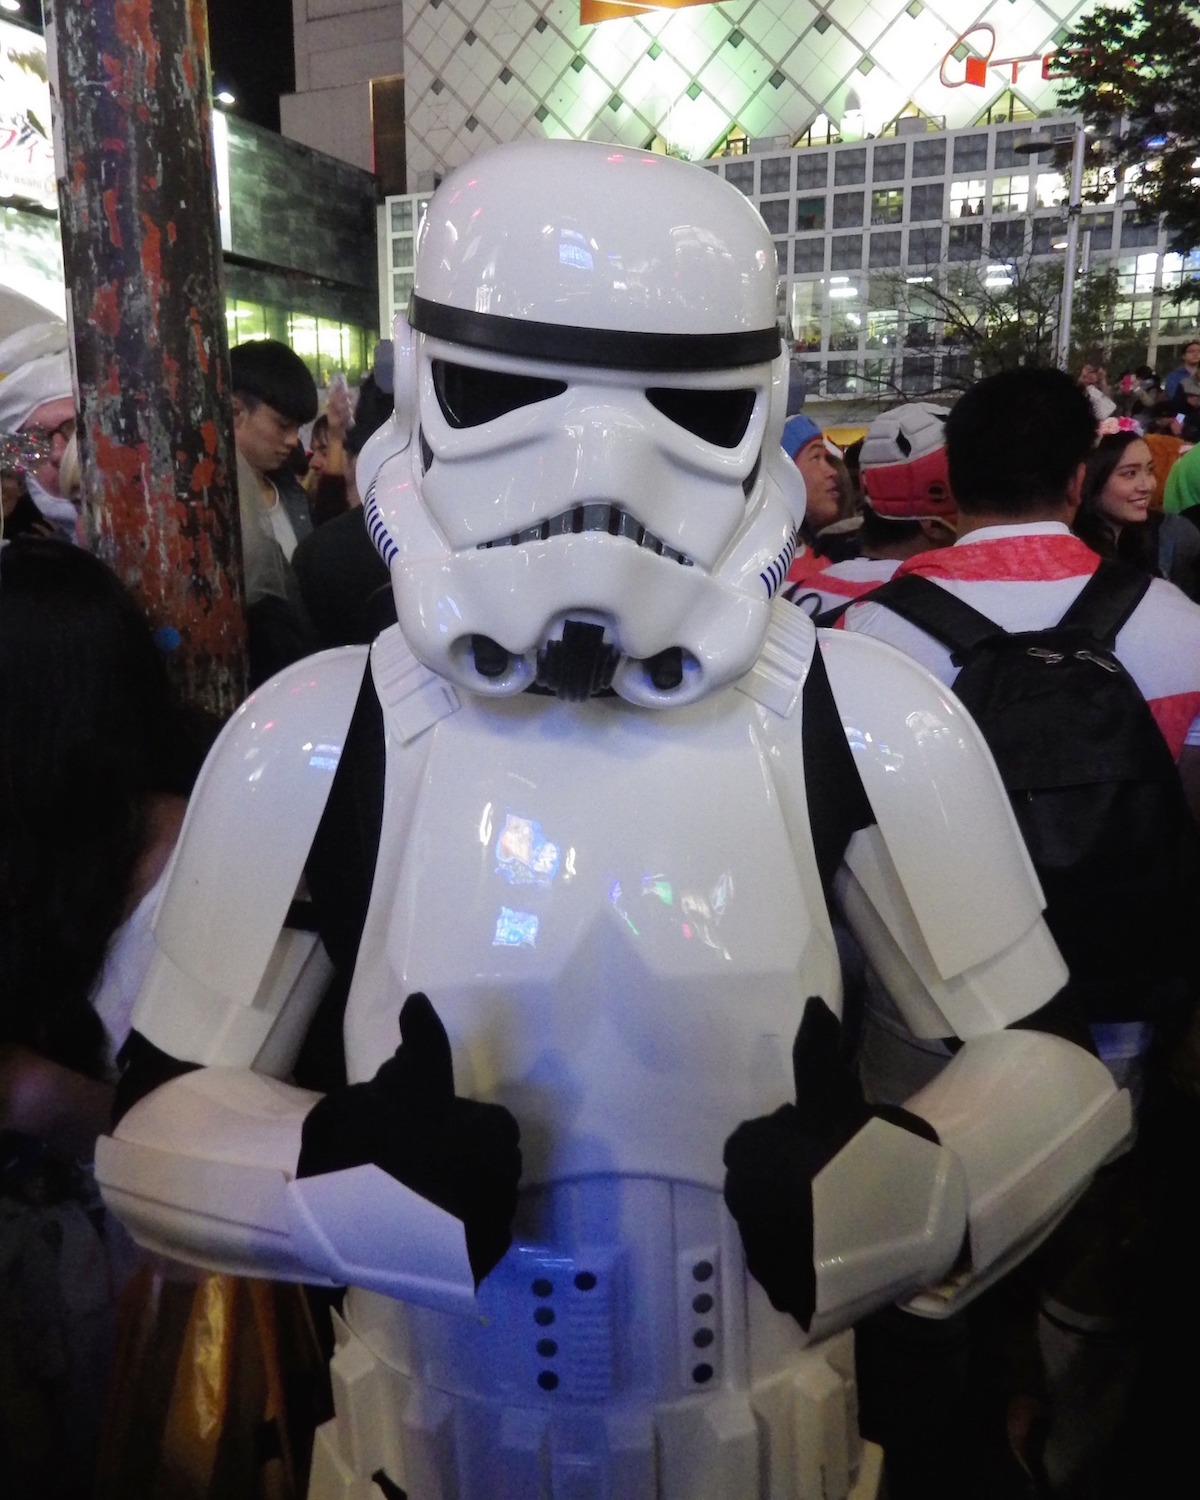 Shibuya cosplayer dressed as a Stormtrooper on Halloween Night 2015. This picture was taken right at Hachiko Crossing. Shades of Danny Choo, the original   Tokyo Dance Trooper.